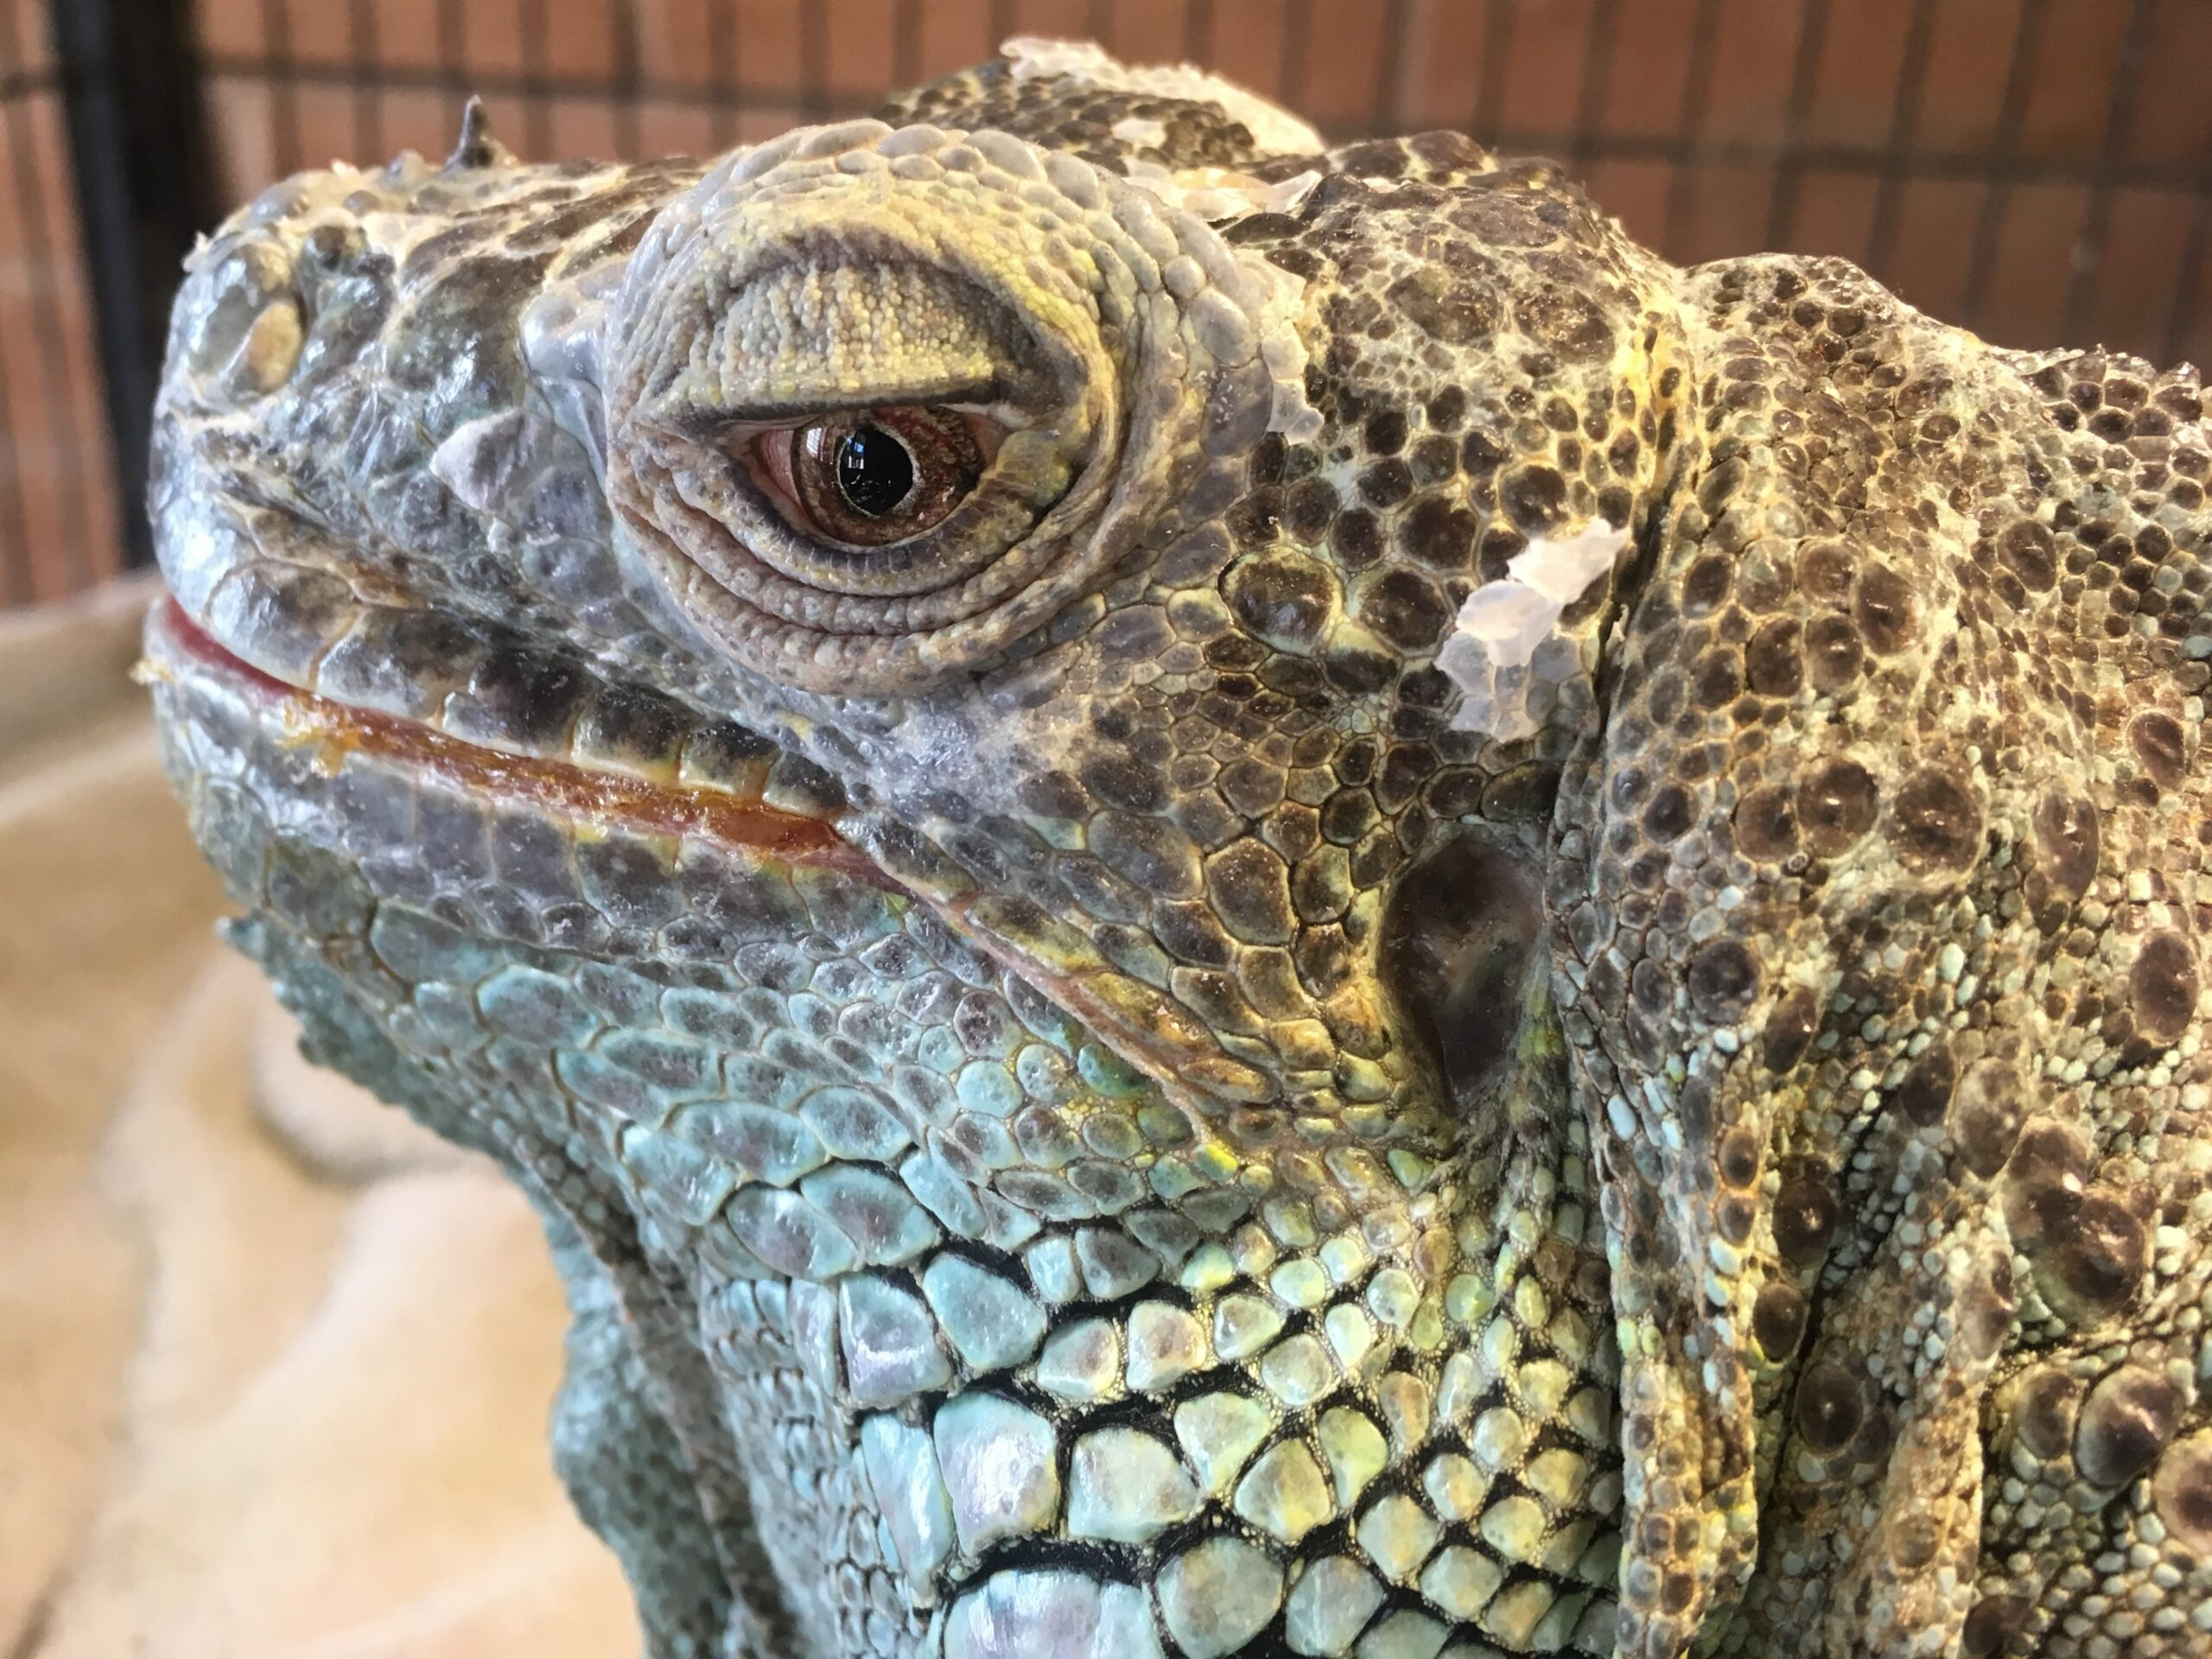 a closeup of the head of a green iguana